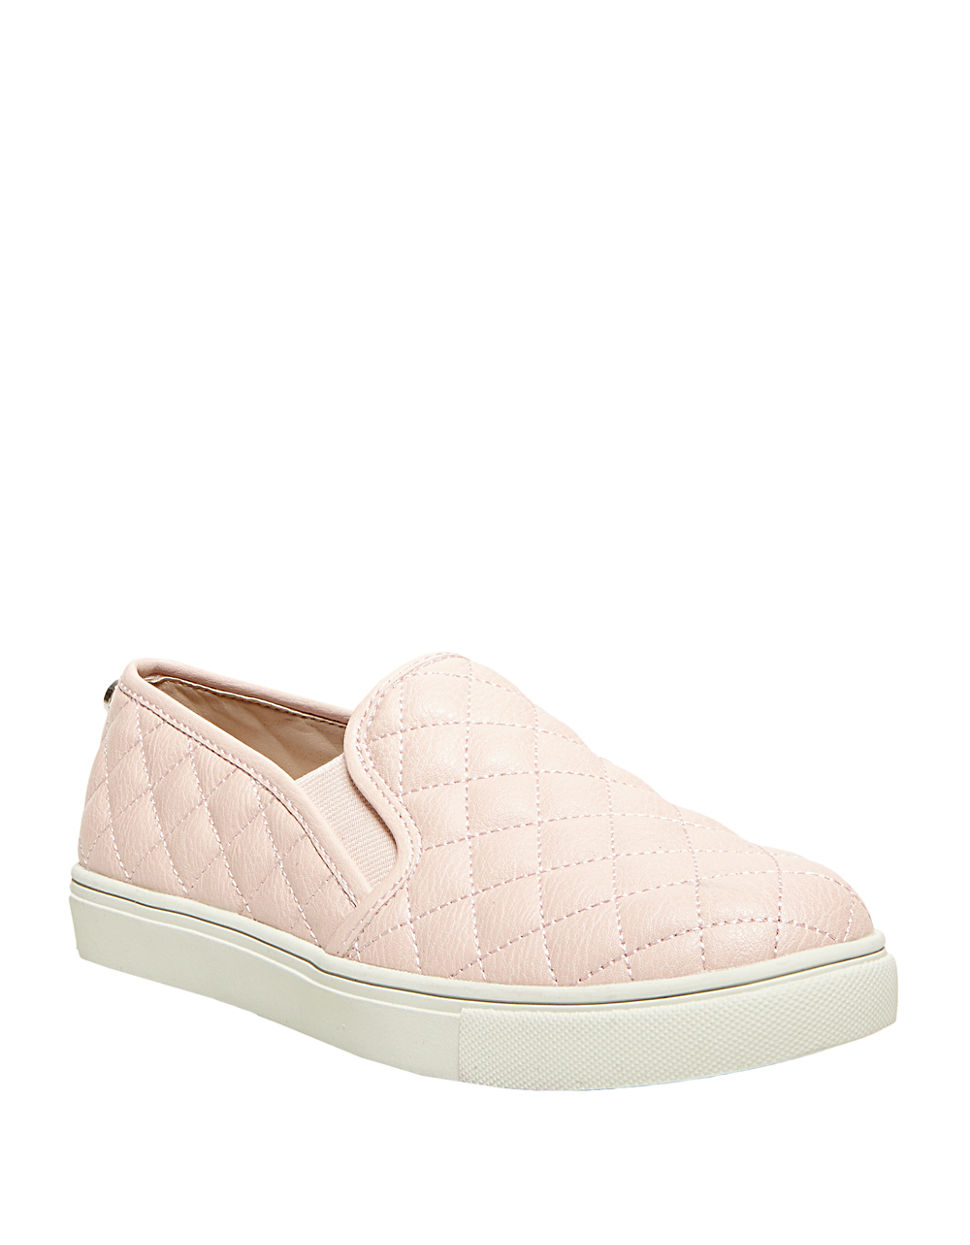 8228af5c126 Steve Madden Ecentrcq Quilted Faux Leather Slip-ons in Pink - Lyst